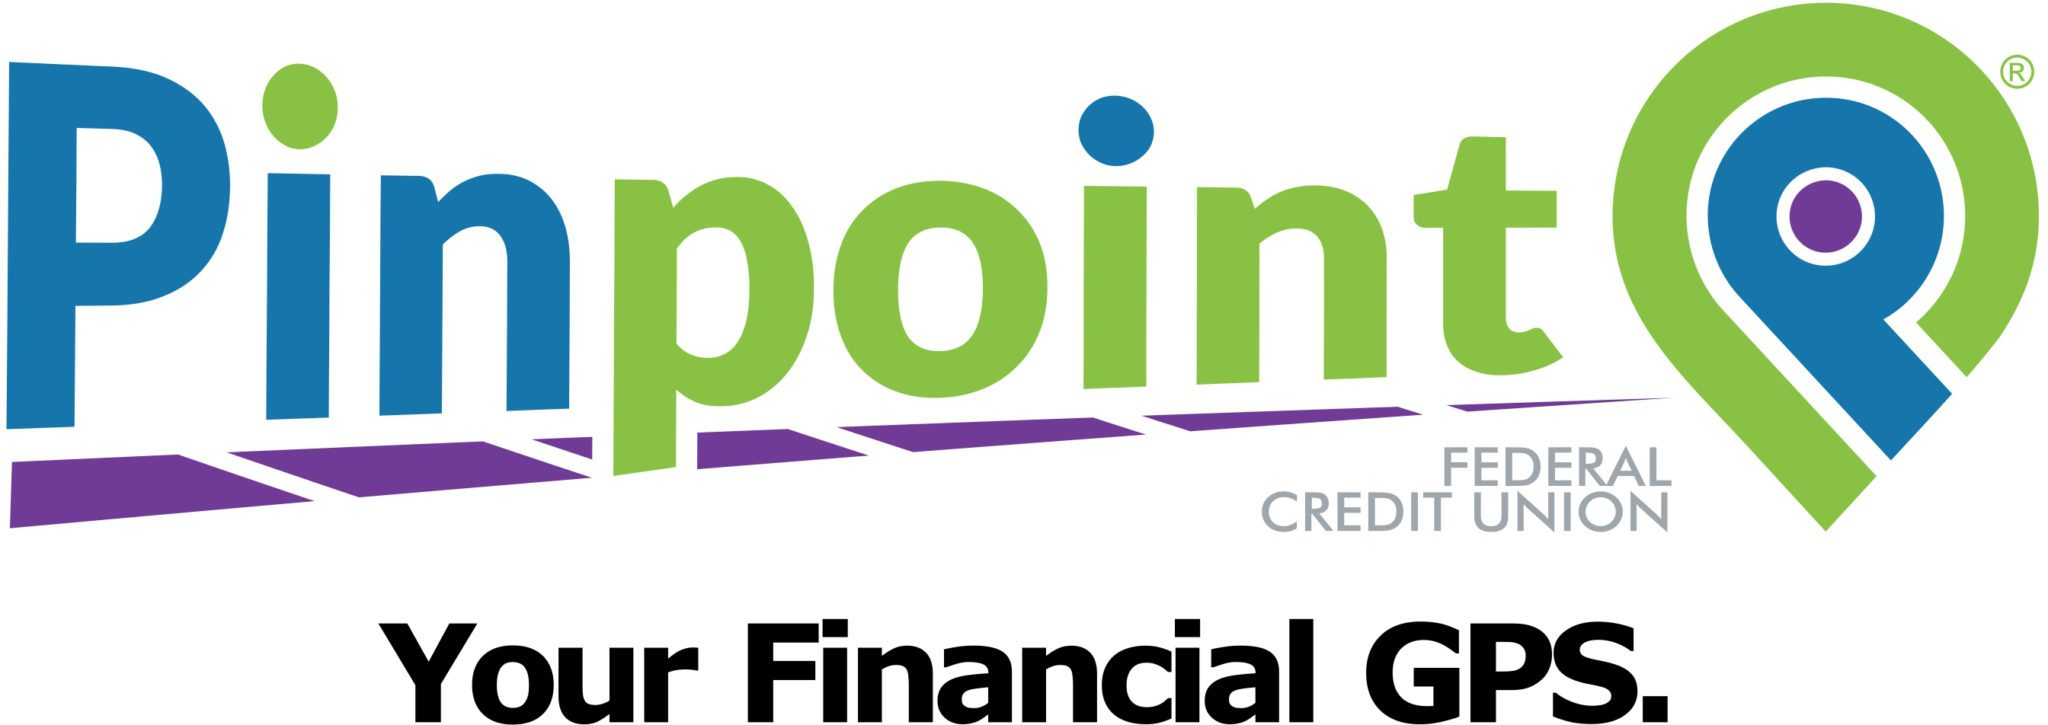 home - pinpoint federal credit union